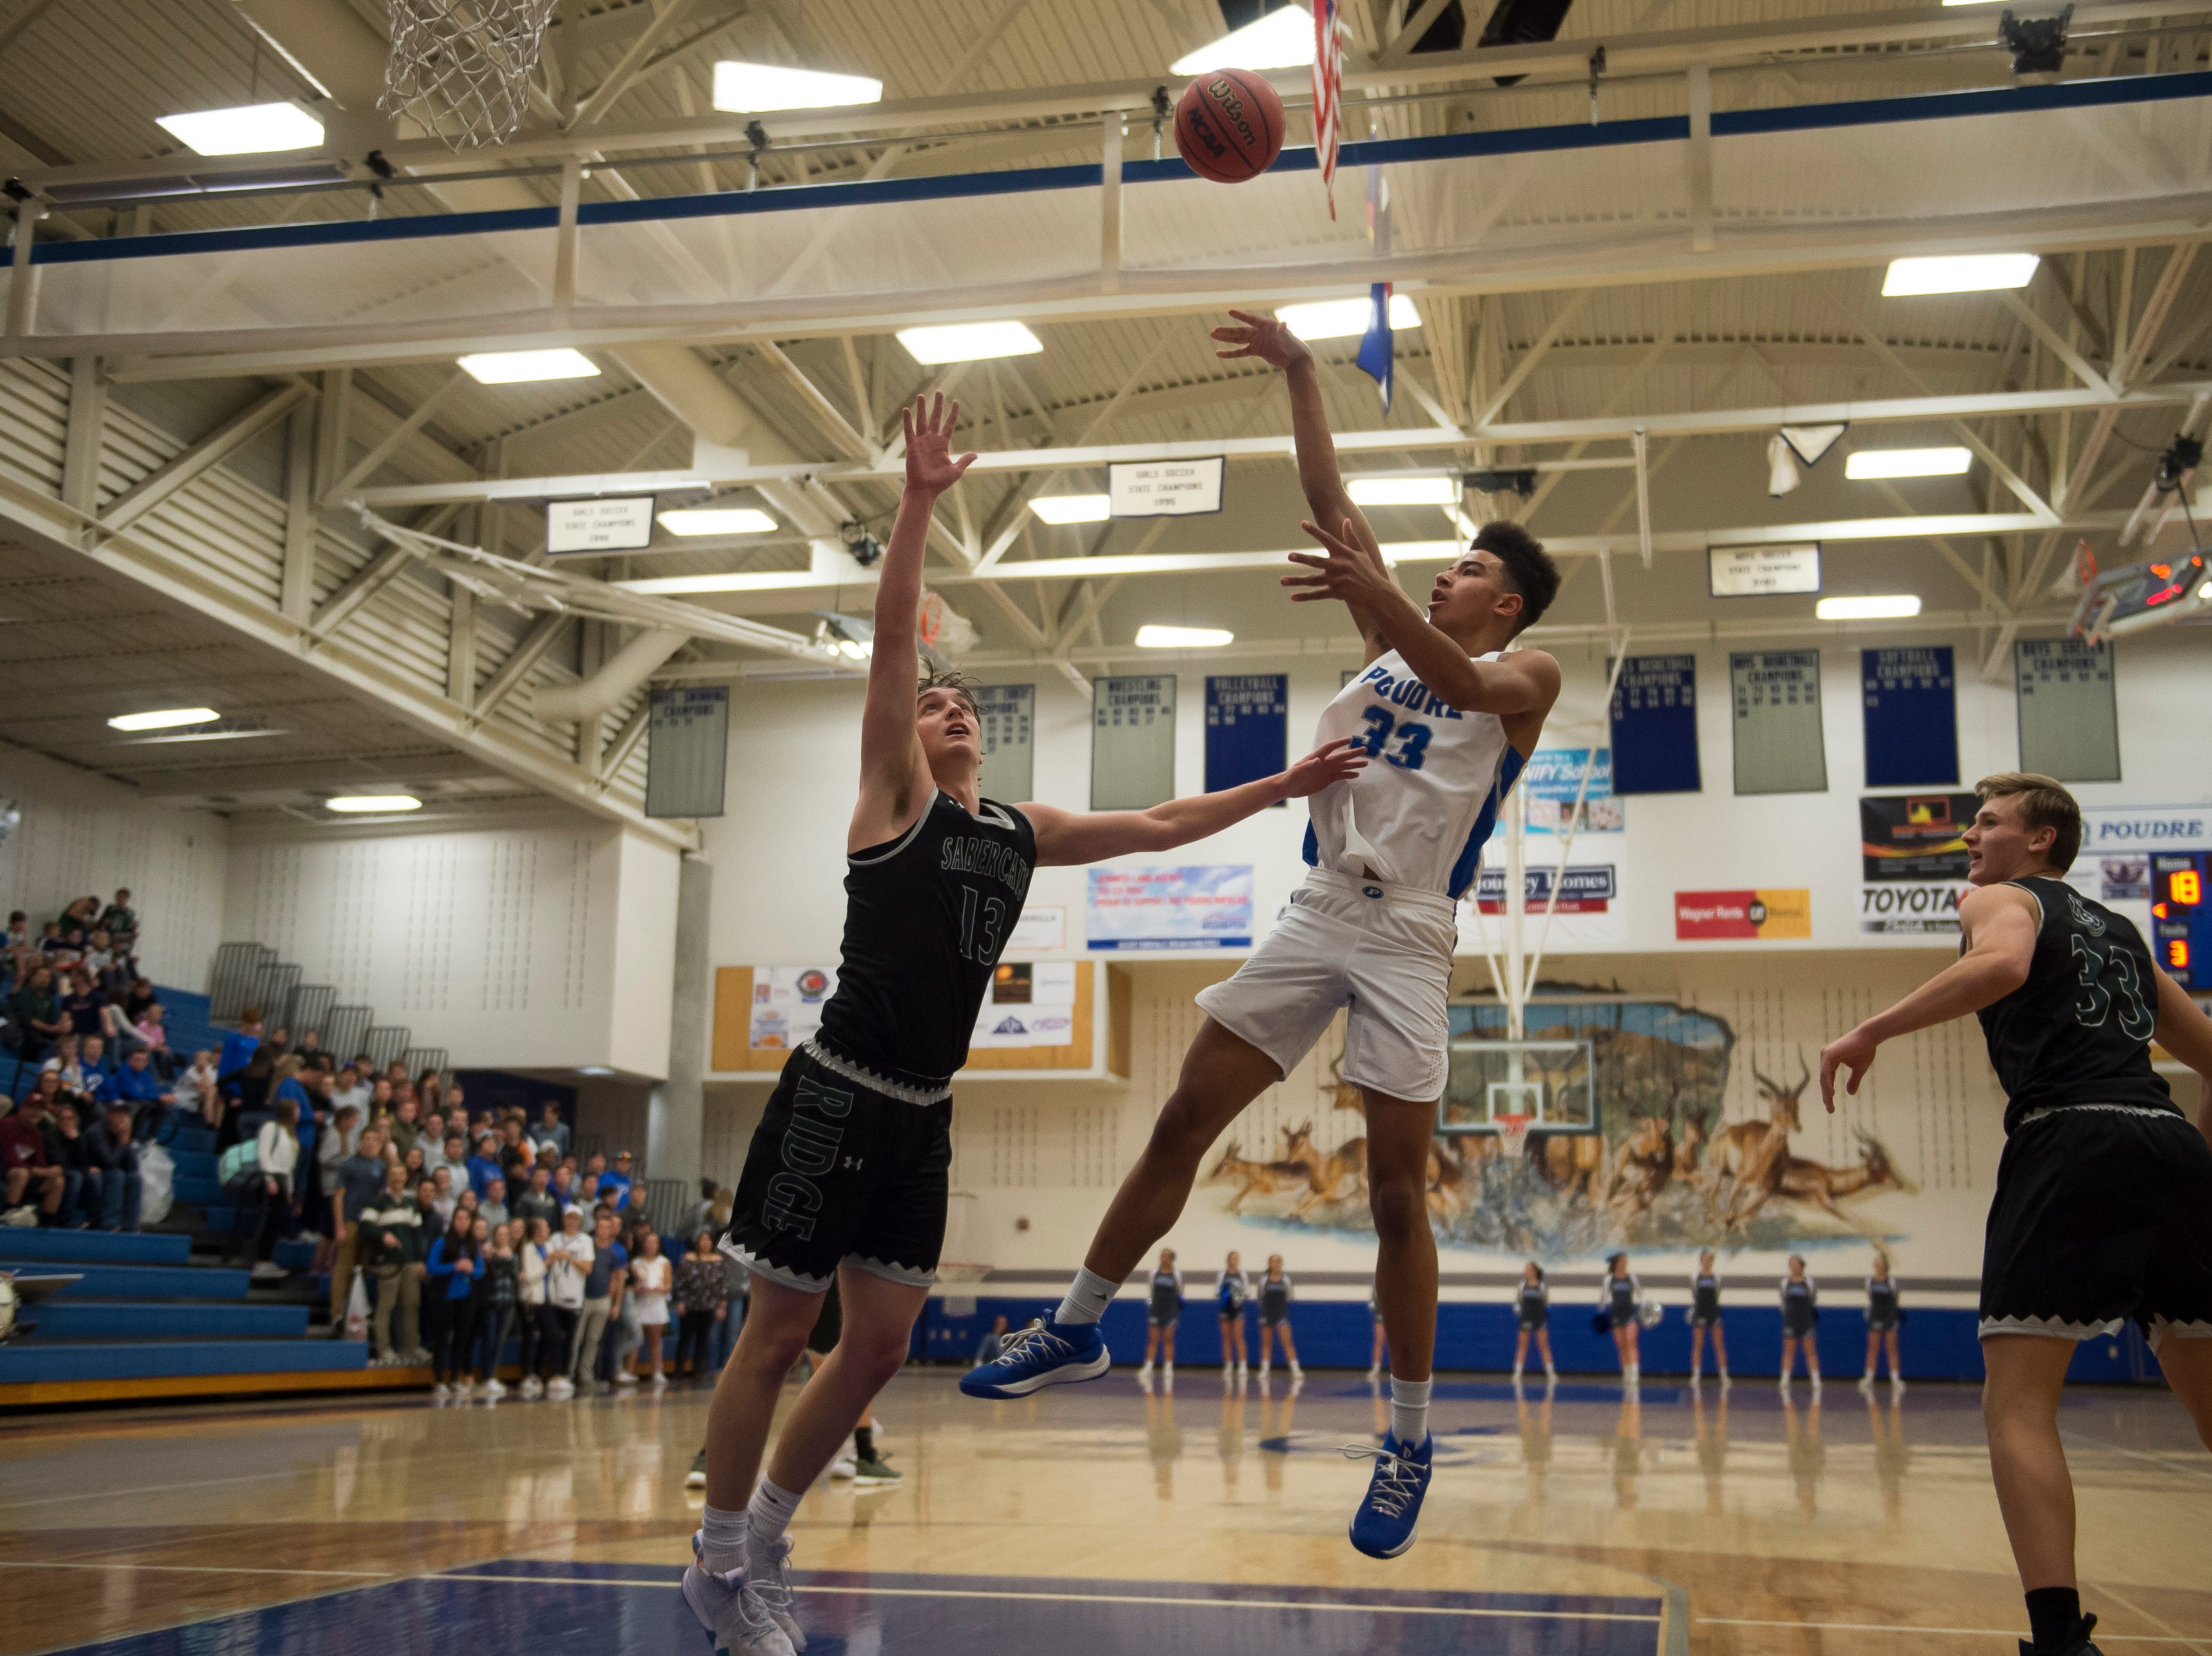 Poudre High School senior Damian Forrest (33) puts a shot up over Fossil Ridge High School senior Holdyn Kawcak (13) on Tuesday, Dec. 4, 2018, at Poudre High School on Fort Collins, Colo.